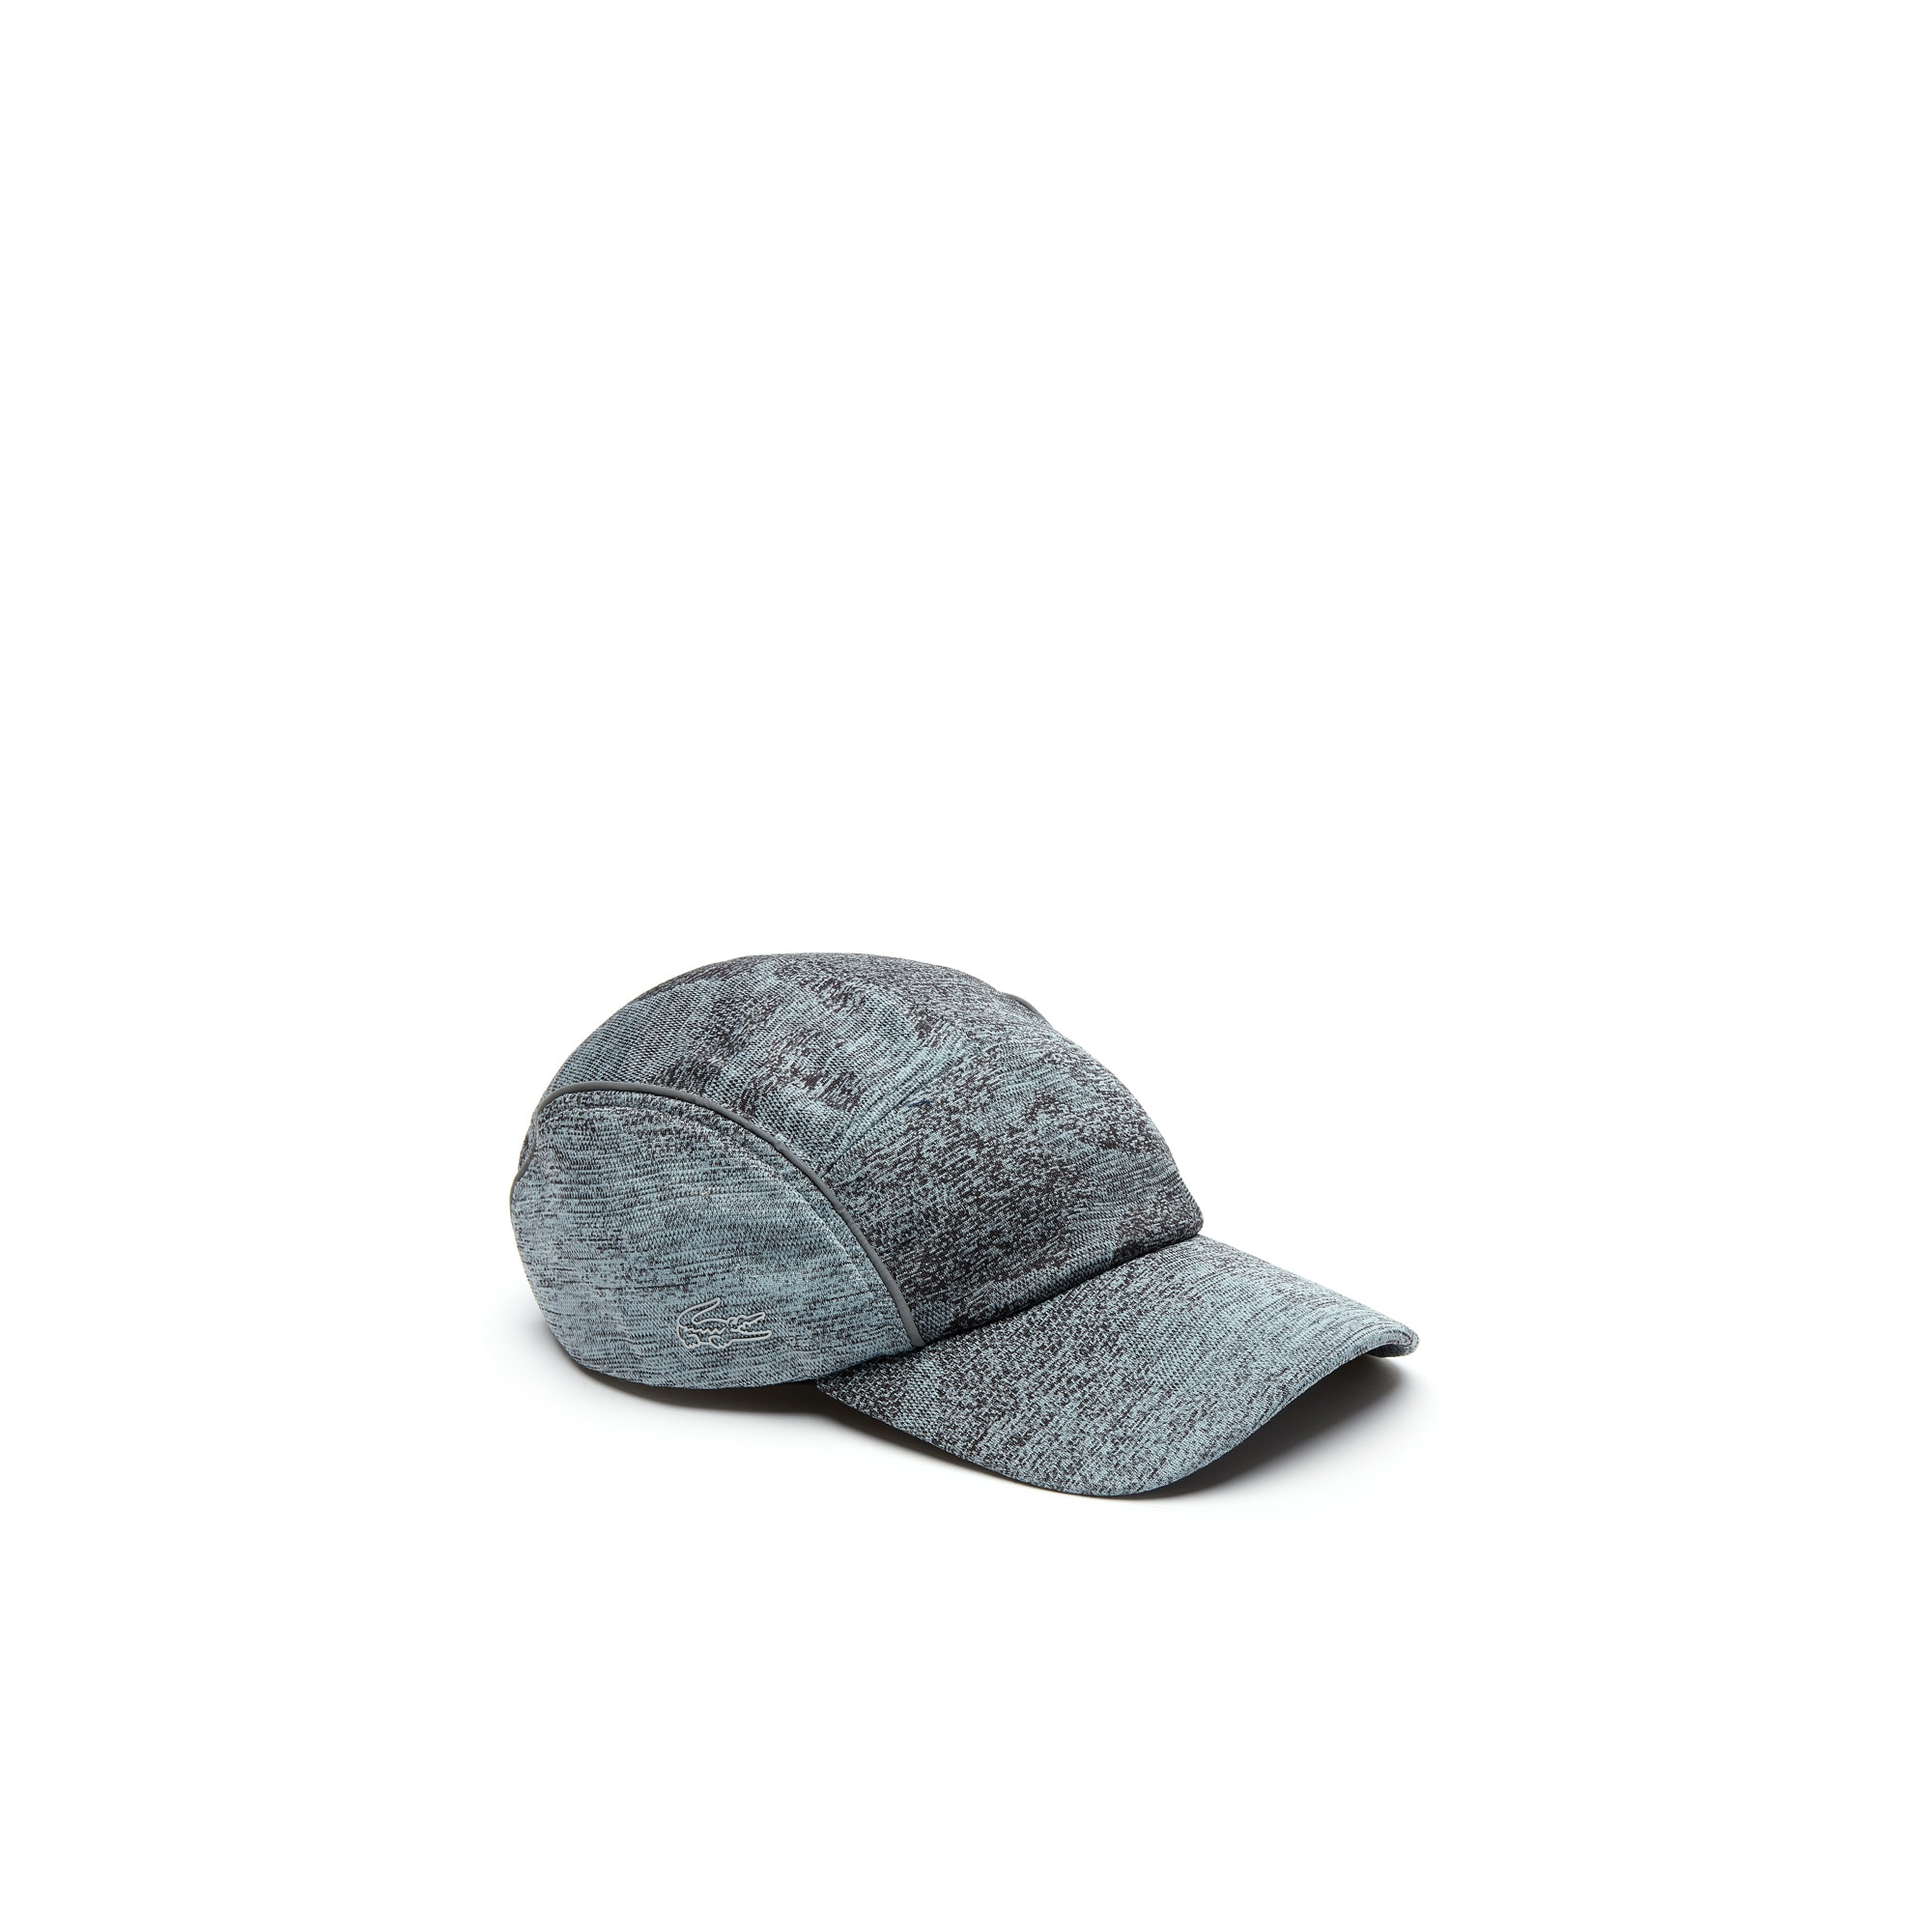 Men's SPORT Print Technical Tennis Cap